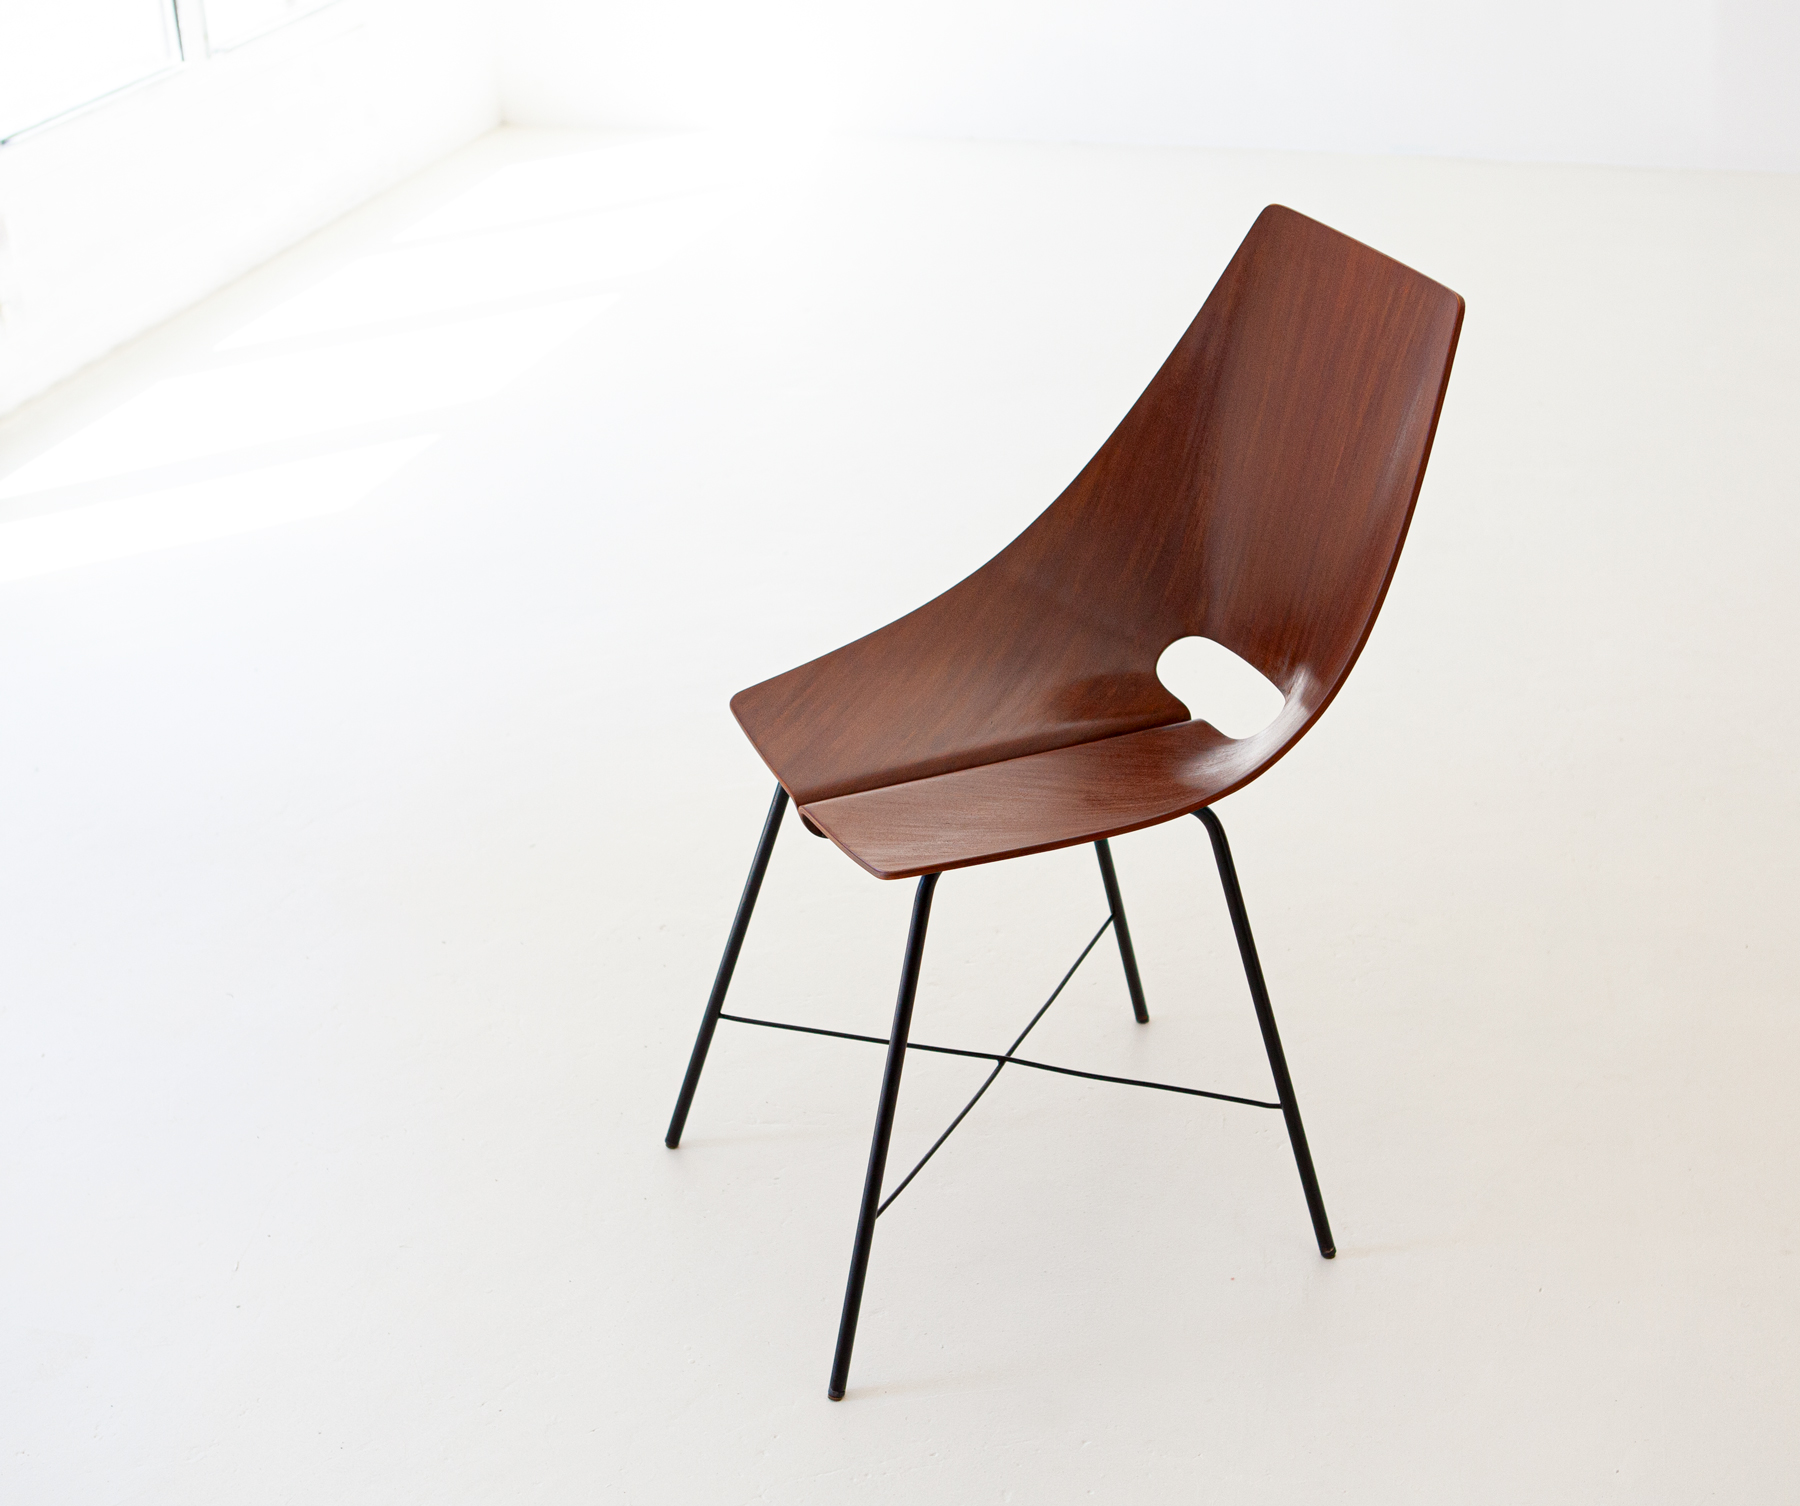 1950s-modern-curved-rosewood-chair-by-societa-compensati-curvati-6-se289